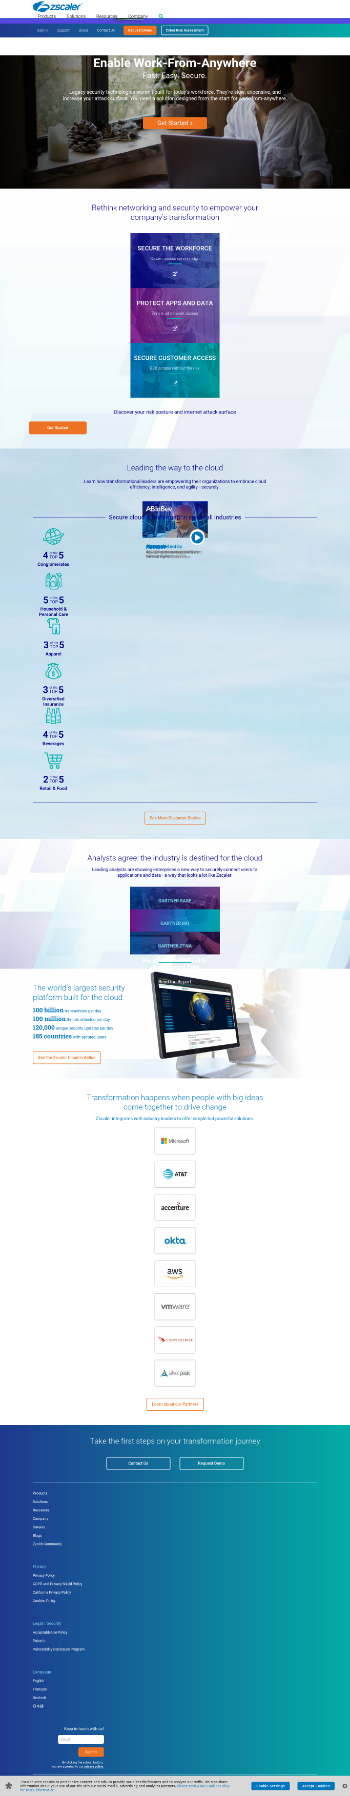 Zscaler, Inc. Website Screenshot